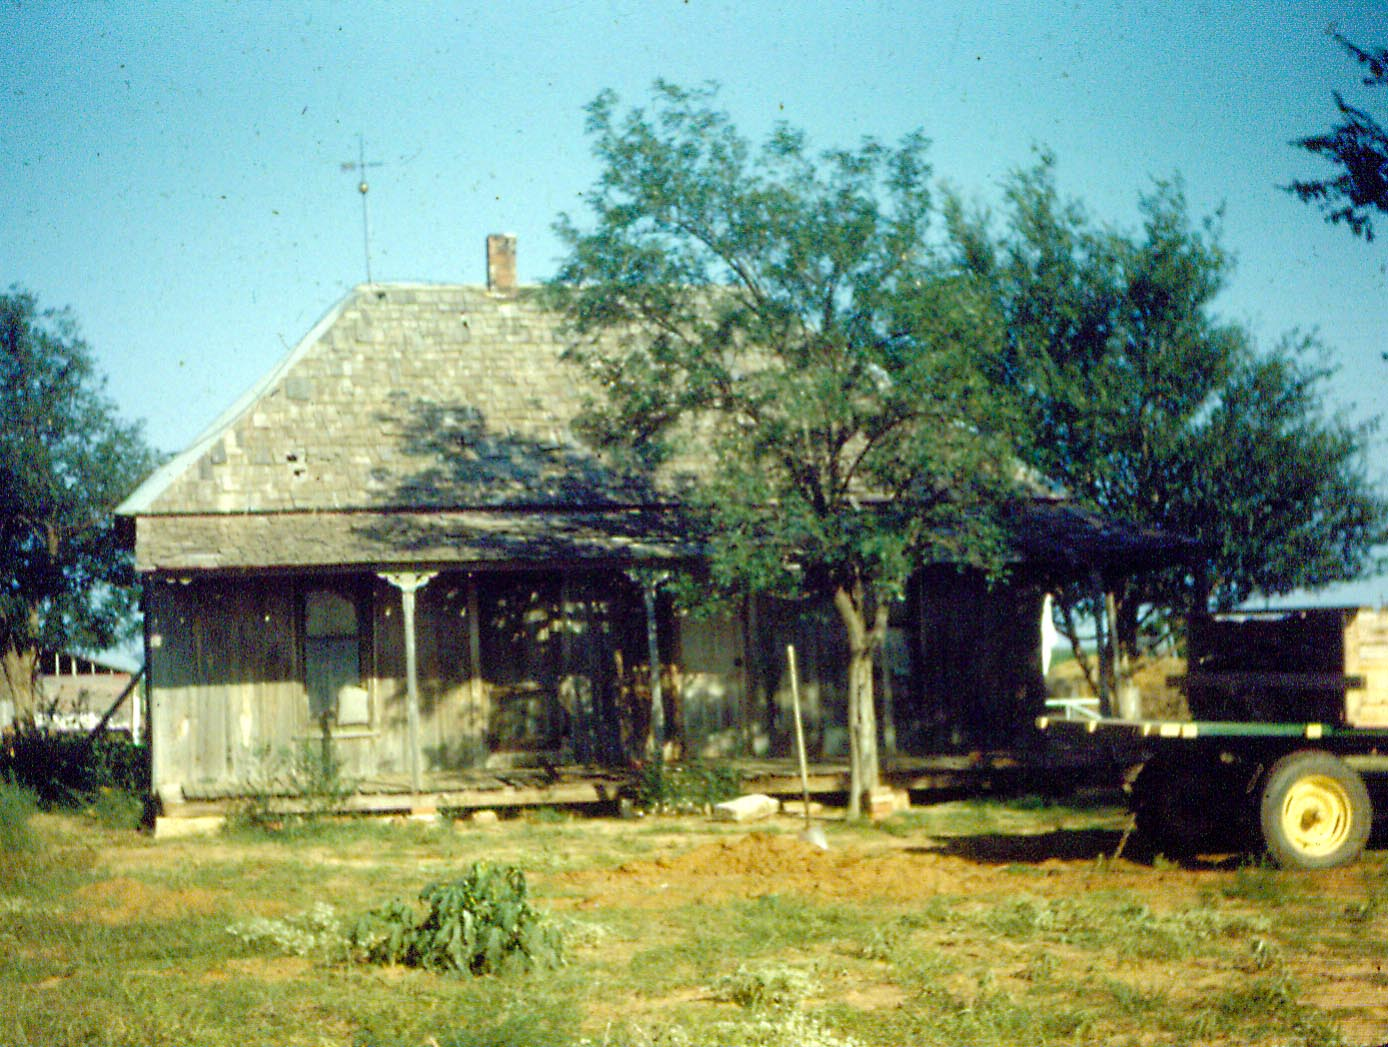 The Old House, circa 1950